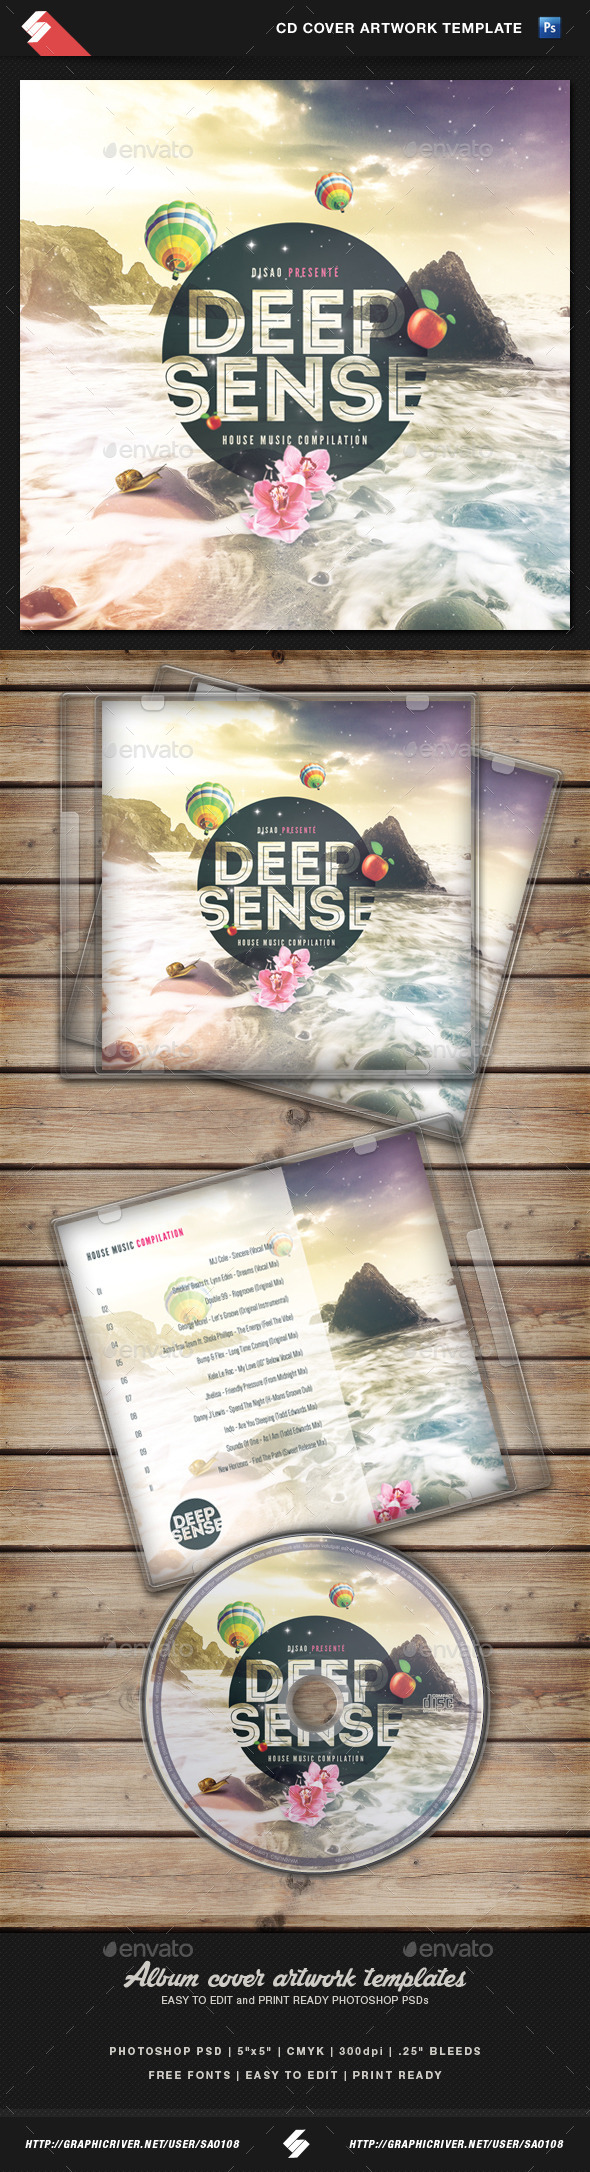 GraphicRiver Deep Sense Sensual CD Cover Artwork Template 10908793